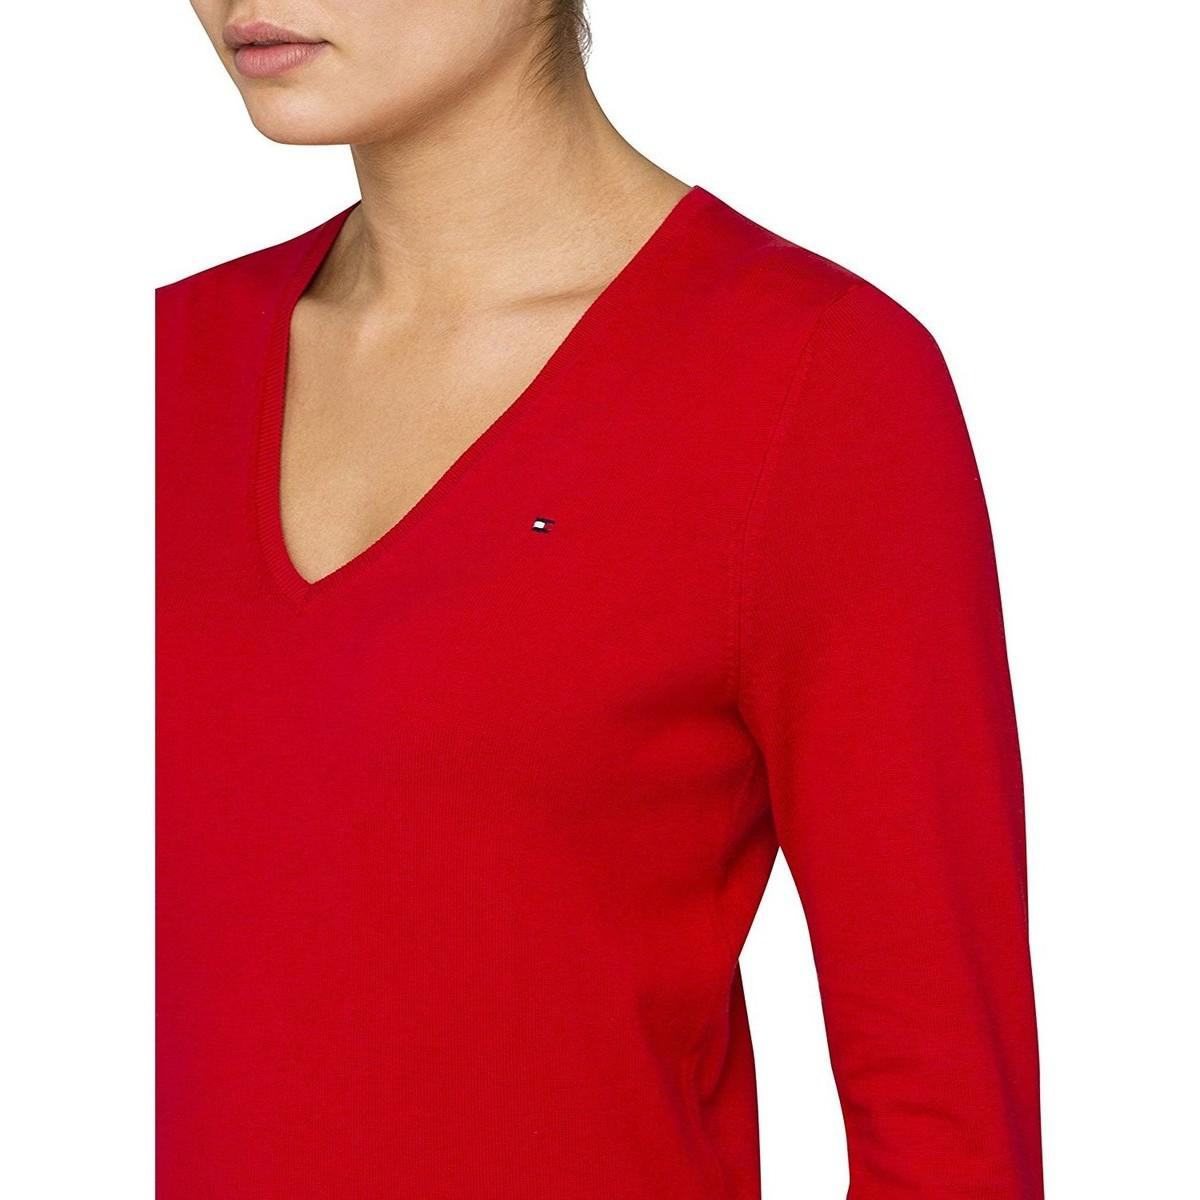 e676e2a0 Tommy Hilfiger - Women's V-neck Knit Sweater Ivy Women's Sweater In ...